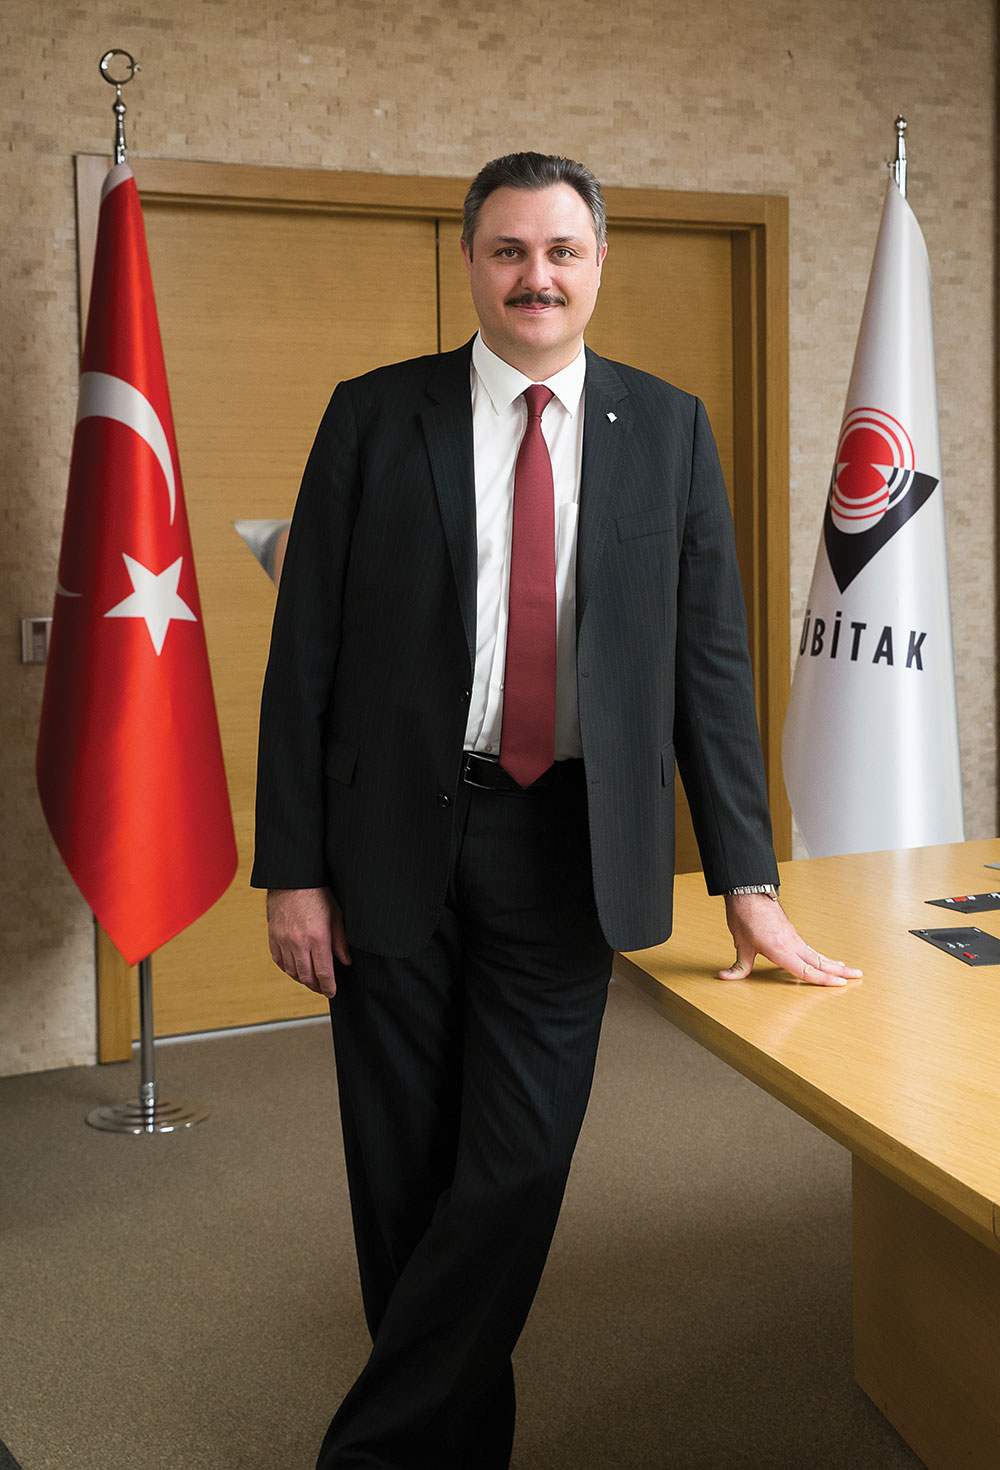 TÜBİTAK - An Important Player in Turkey's Technology Management Eco-System